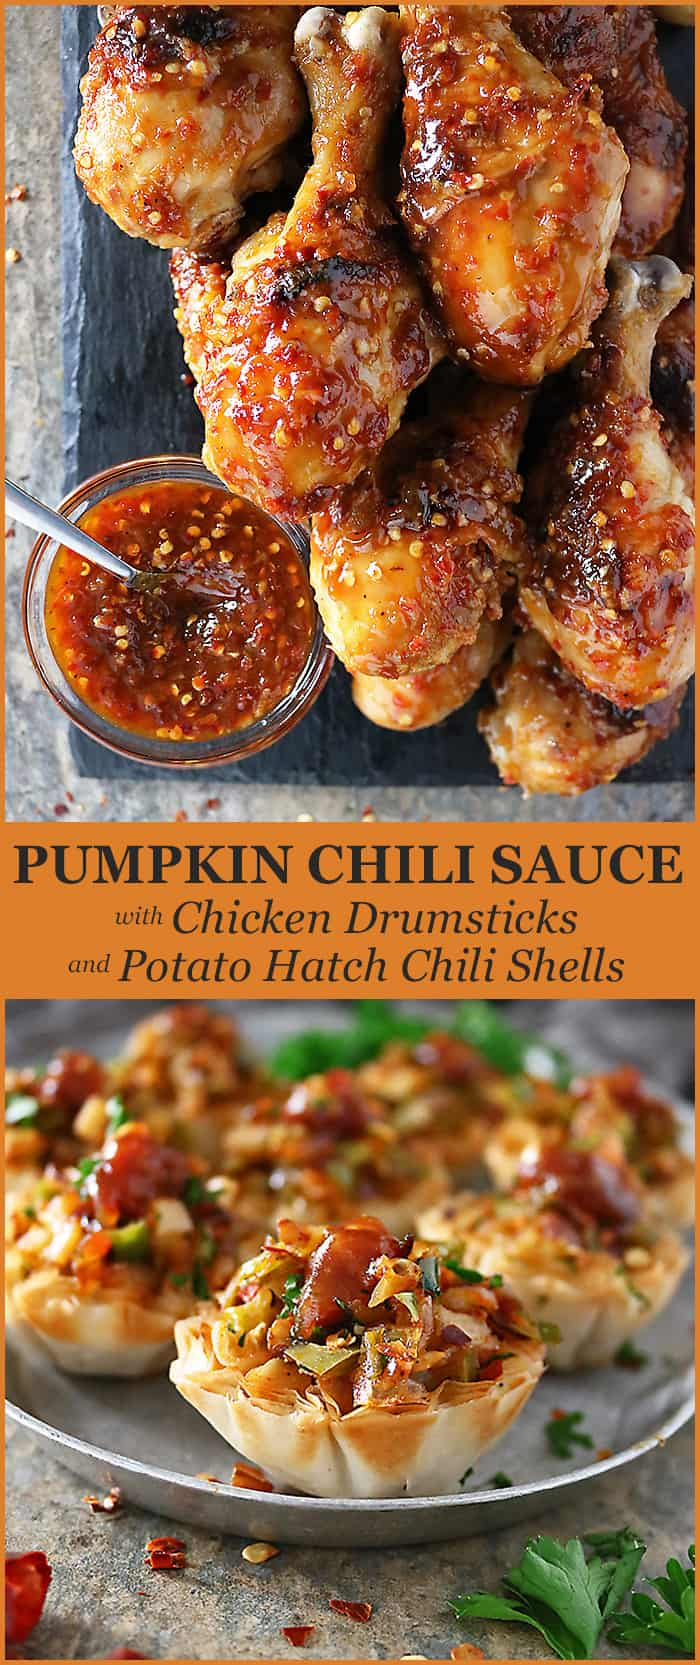 Pumpkin Chili Sauce With Chicken Drumsticks And Potato Hatch Chili Phyllo Shells #ad #GameDayGreats